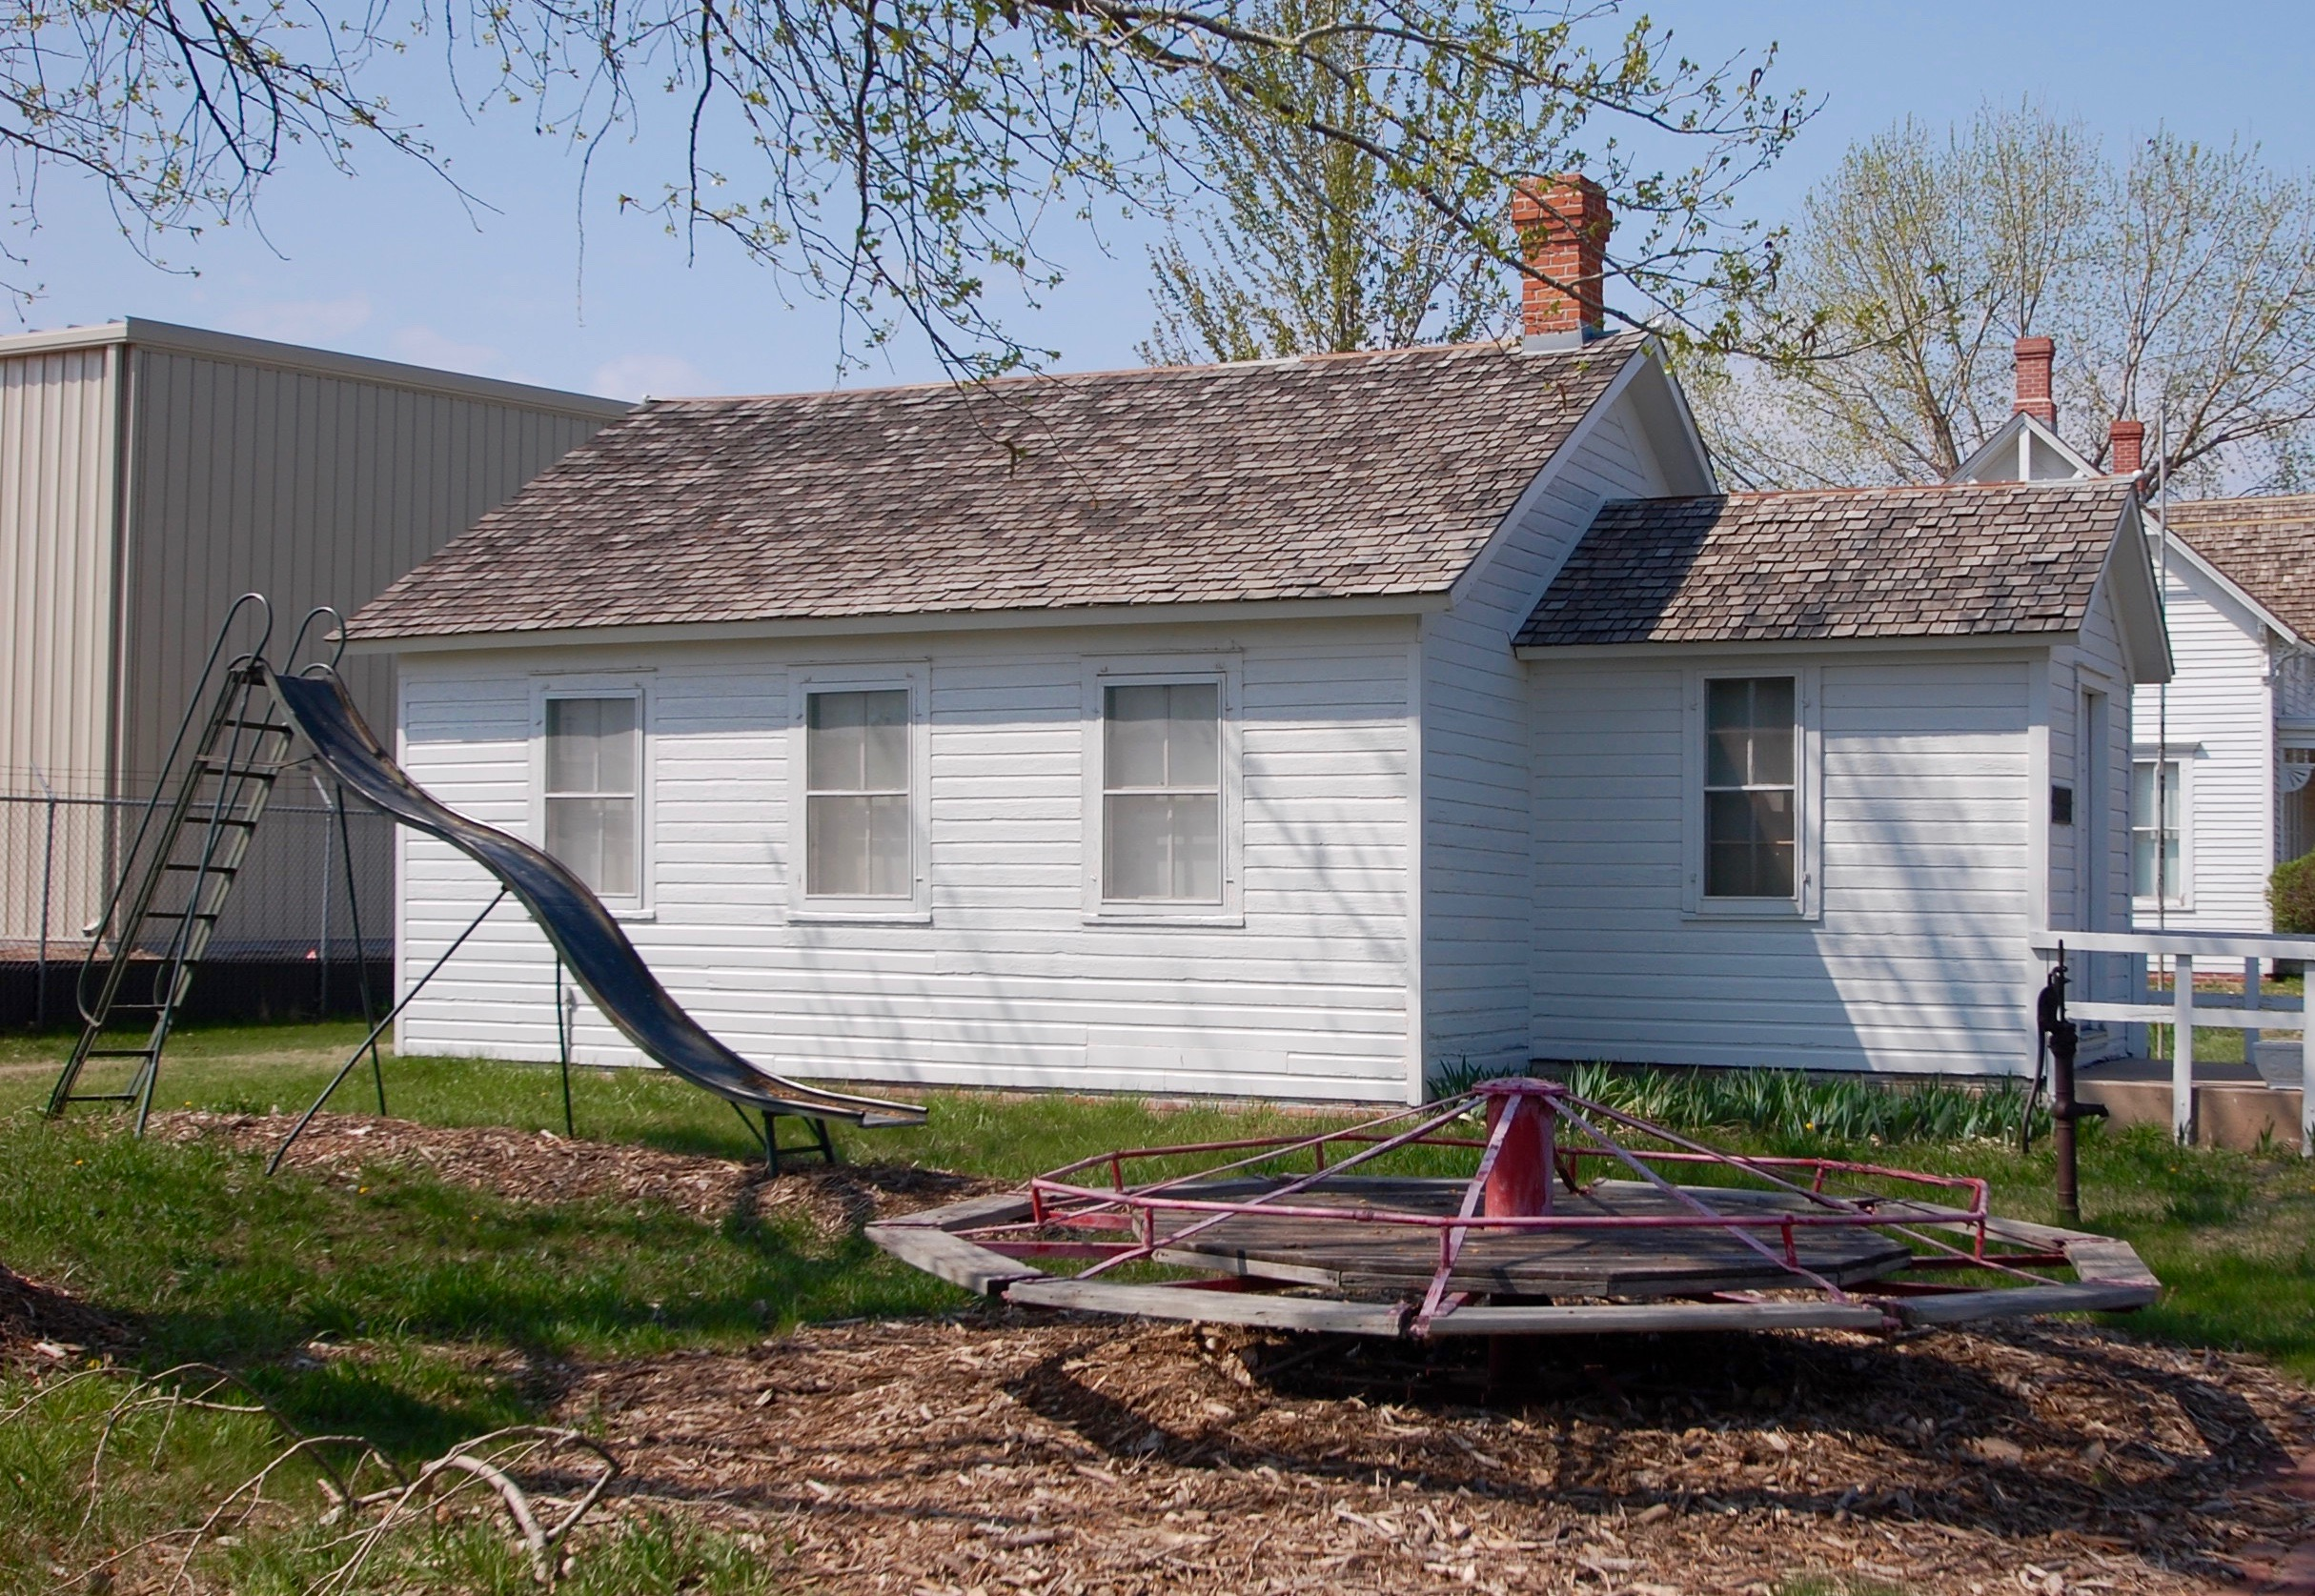 Side view of the schoolhouse and playground equipment.